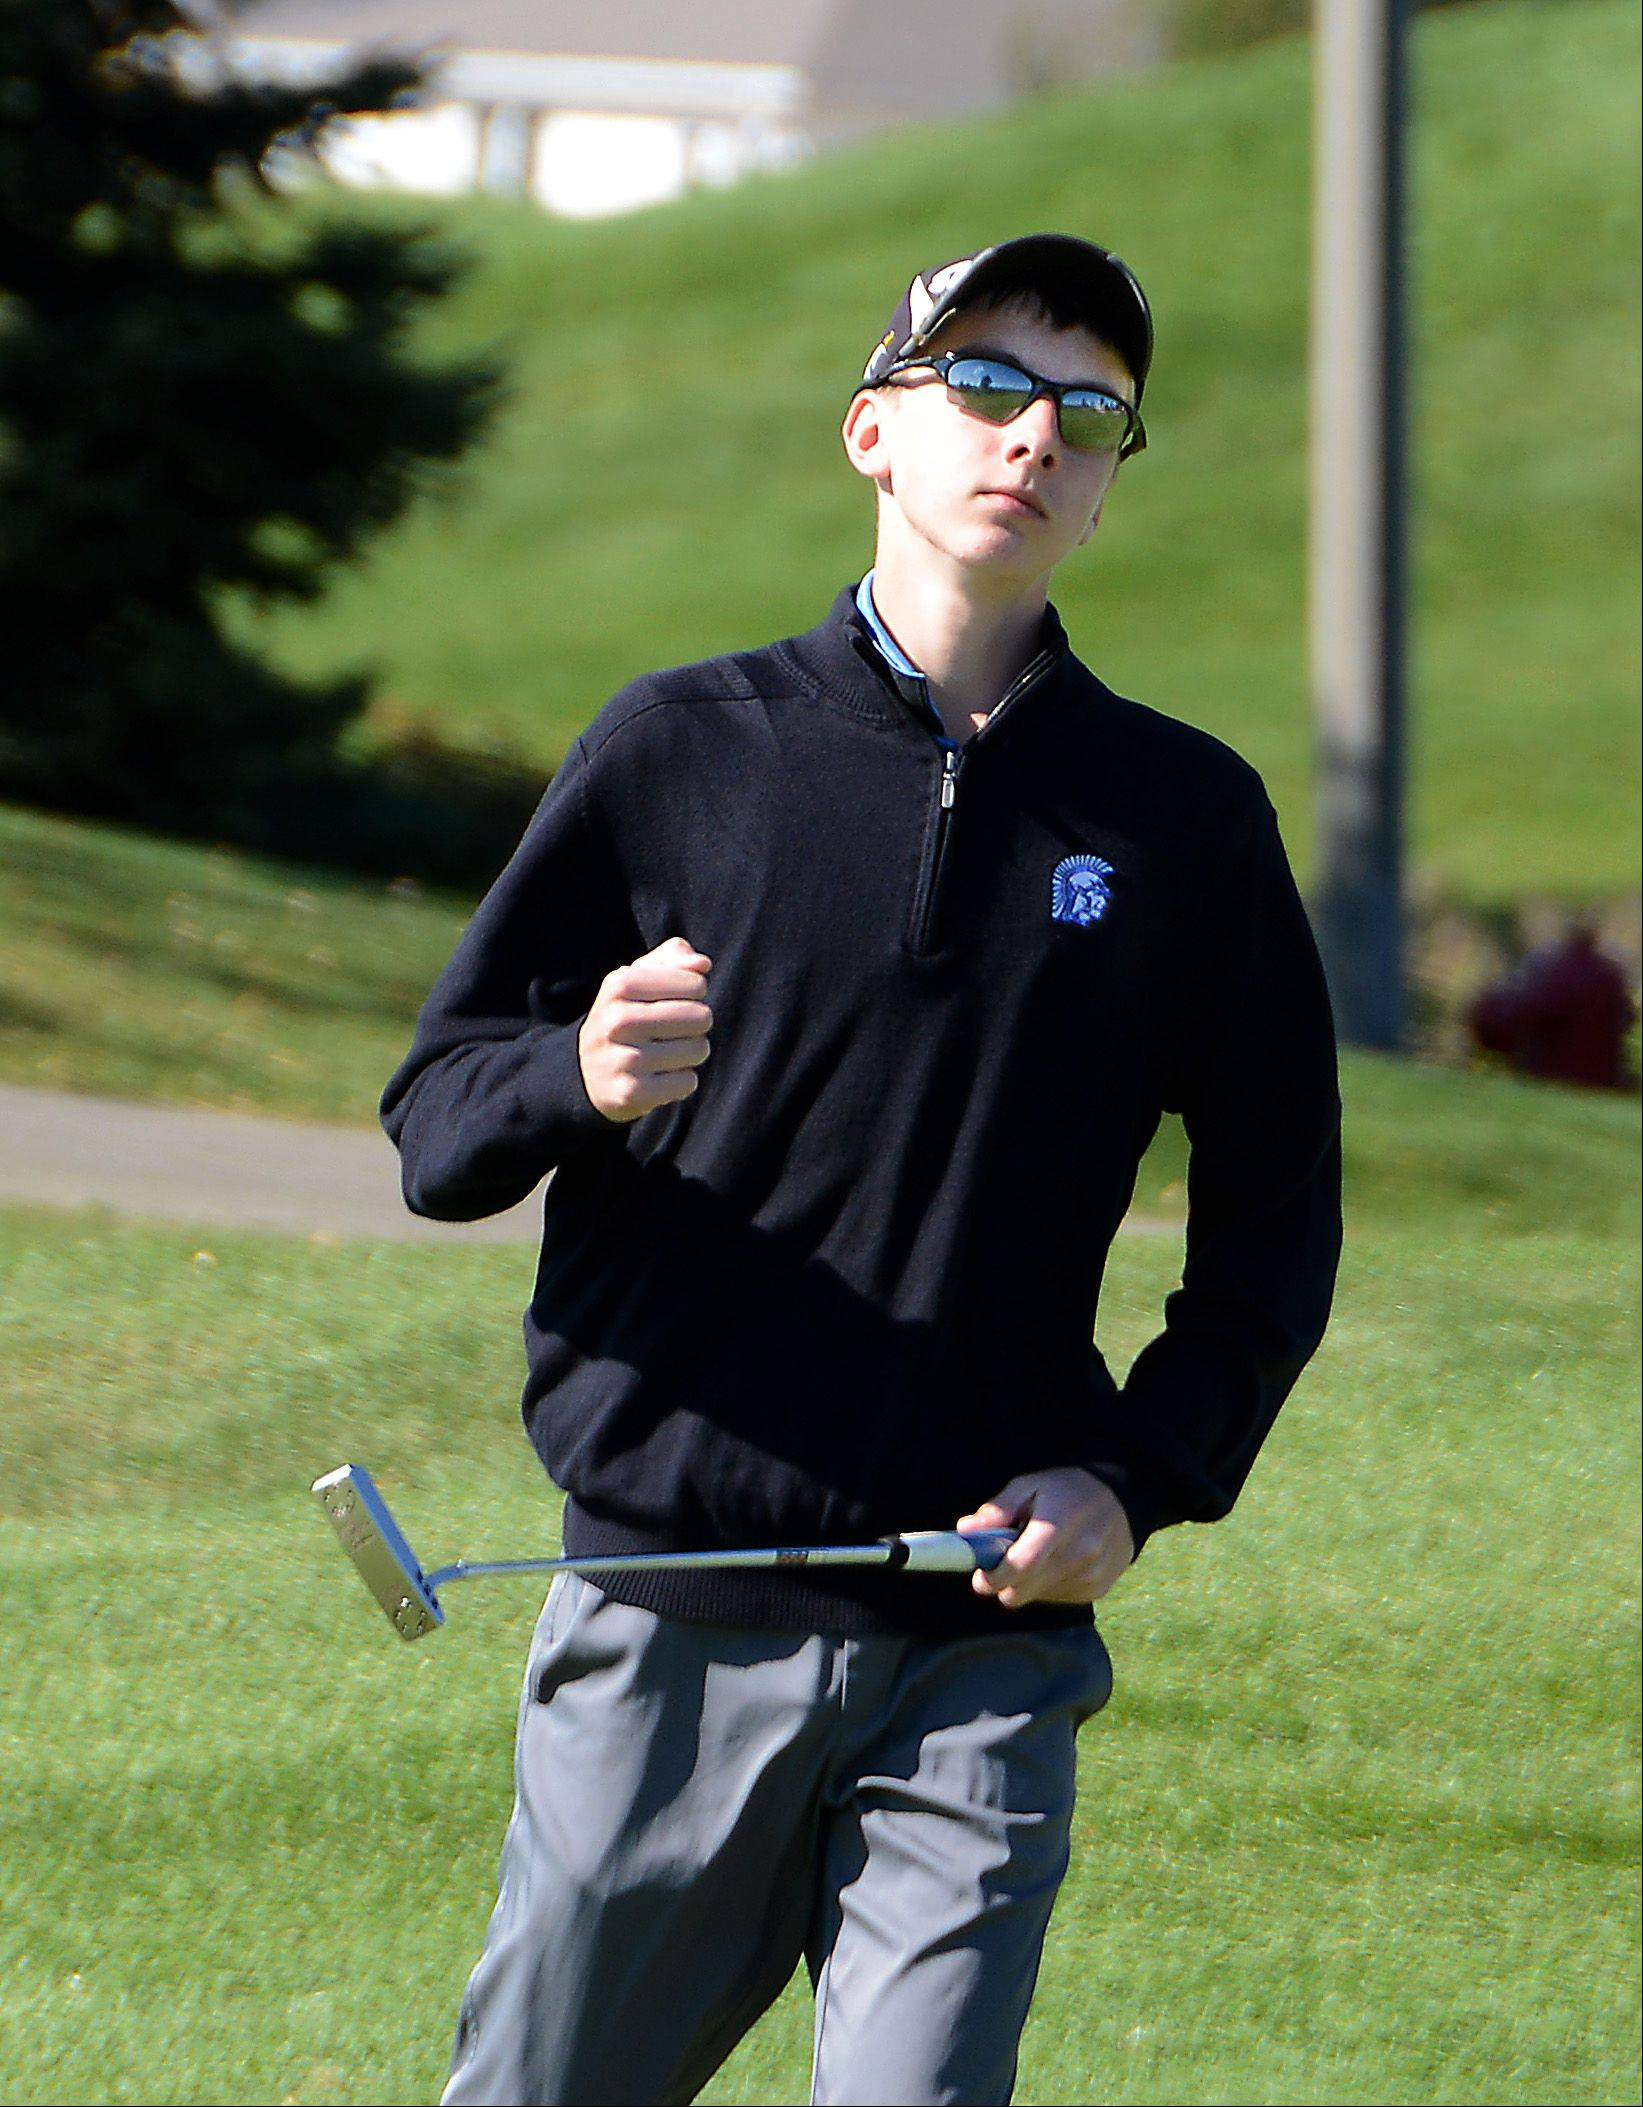 St. Francis' Connor Buckley pumps his fist after sinking a 30' put on the ninth hole. Class 2A boys golf sectional Monday at Broken Arrow Golf Course in Lockport.